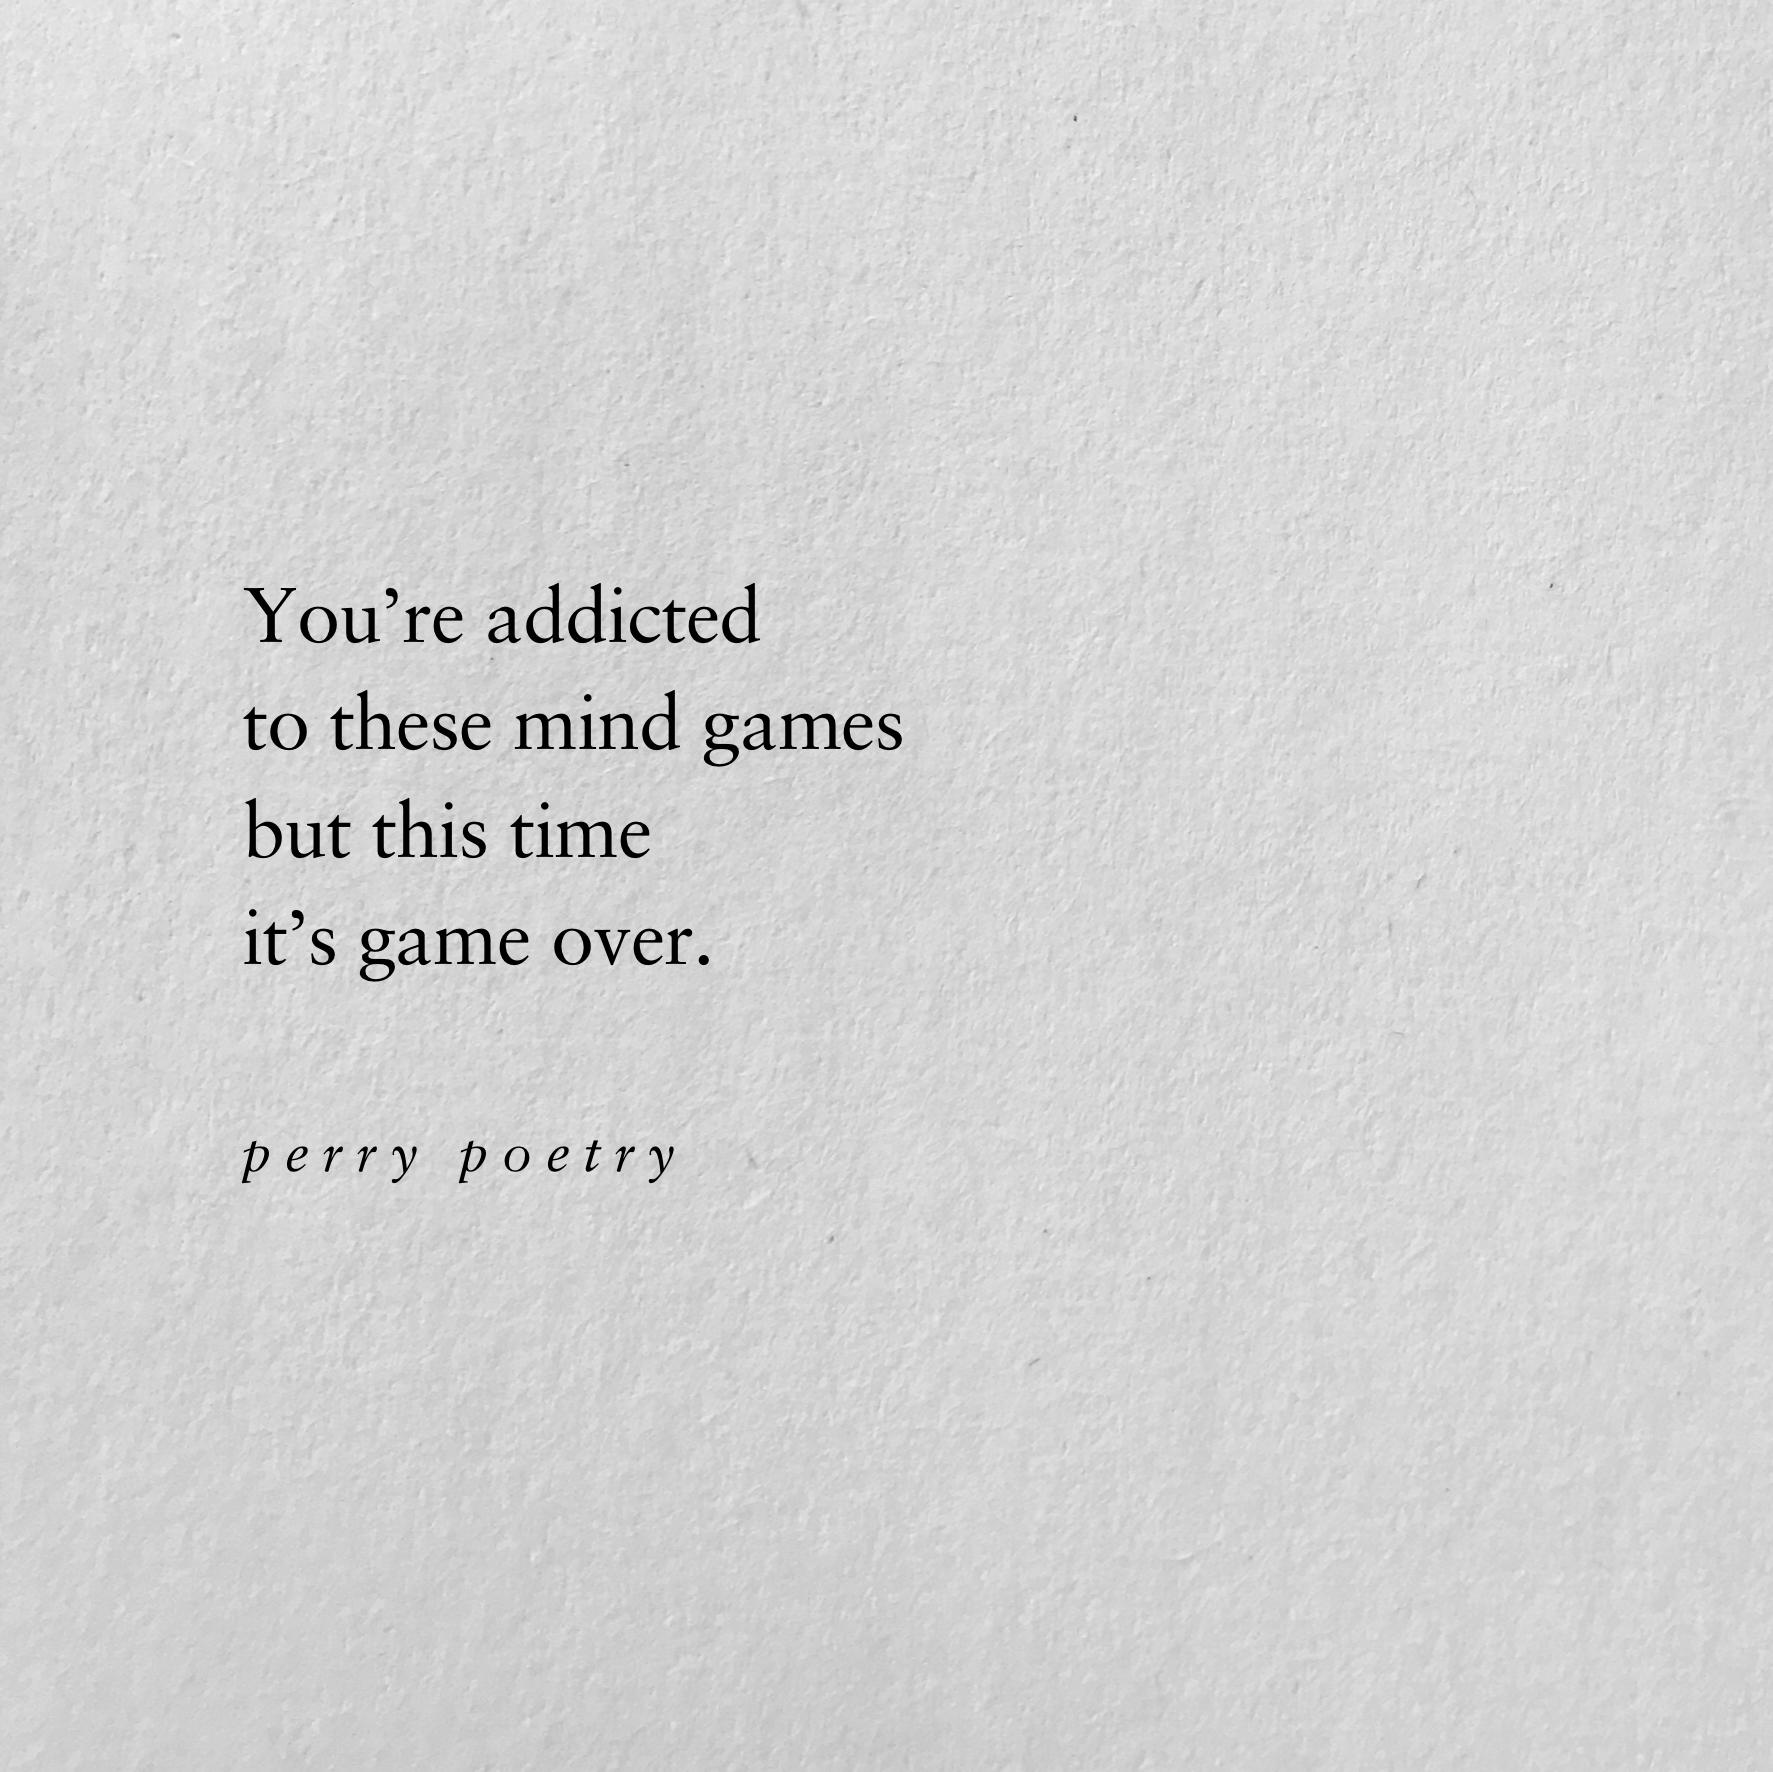 Love Poem Quotes Perrypoetry On Instagram Poem Poetry Poems Quotes Love